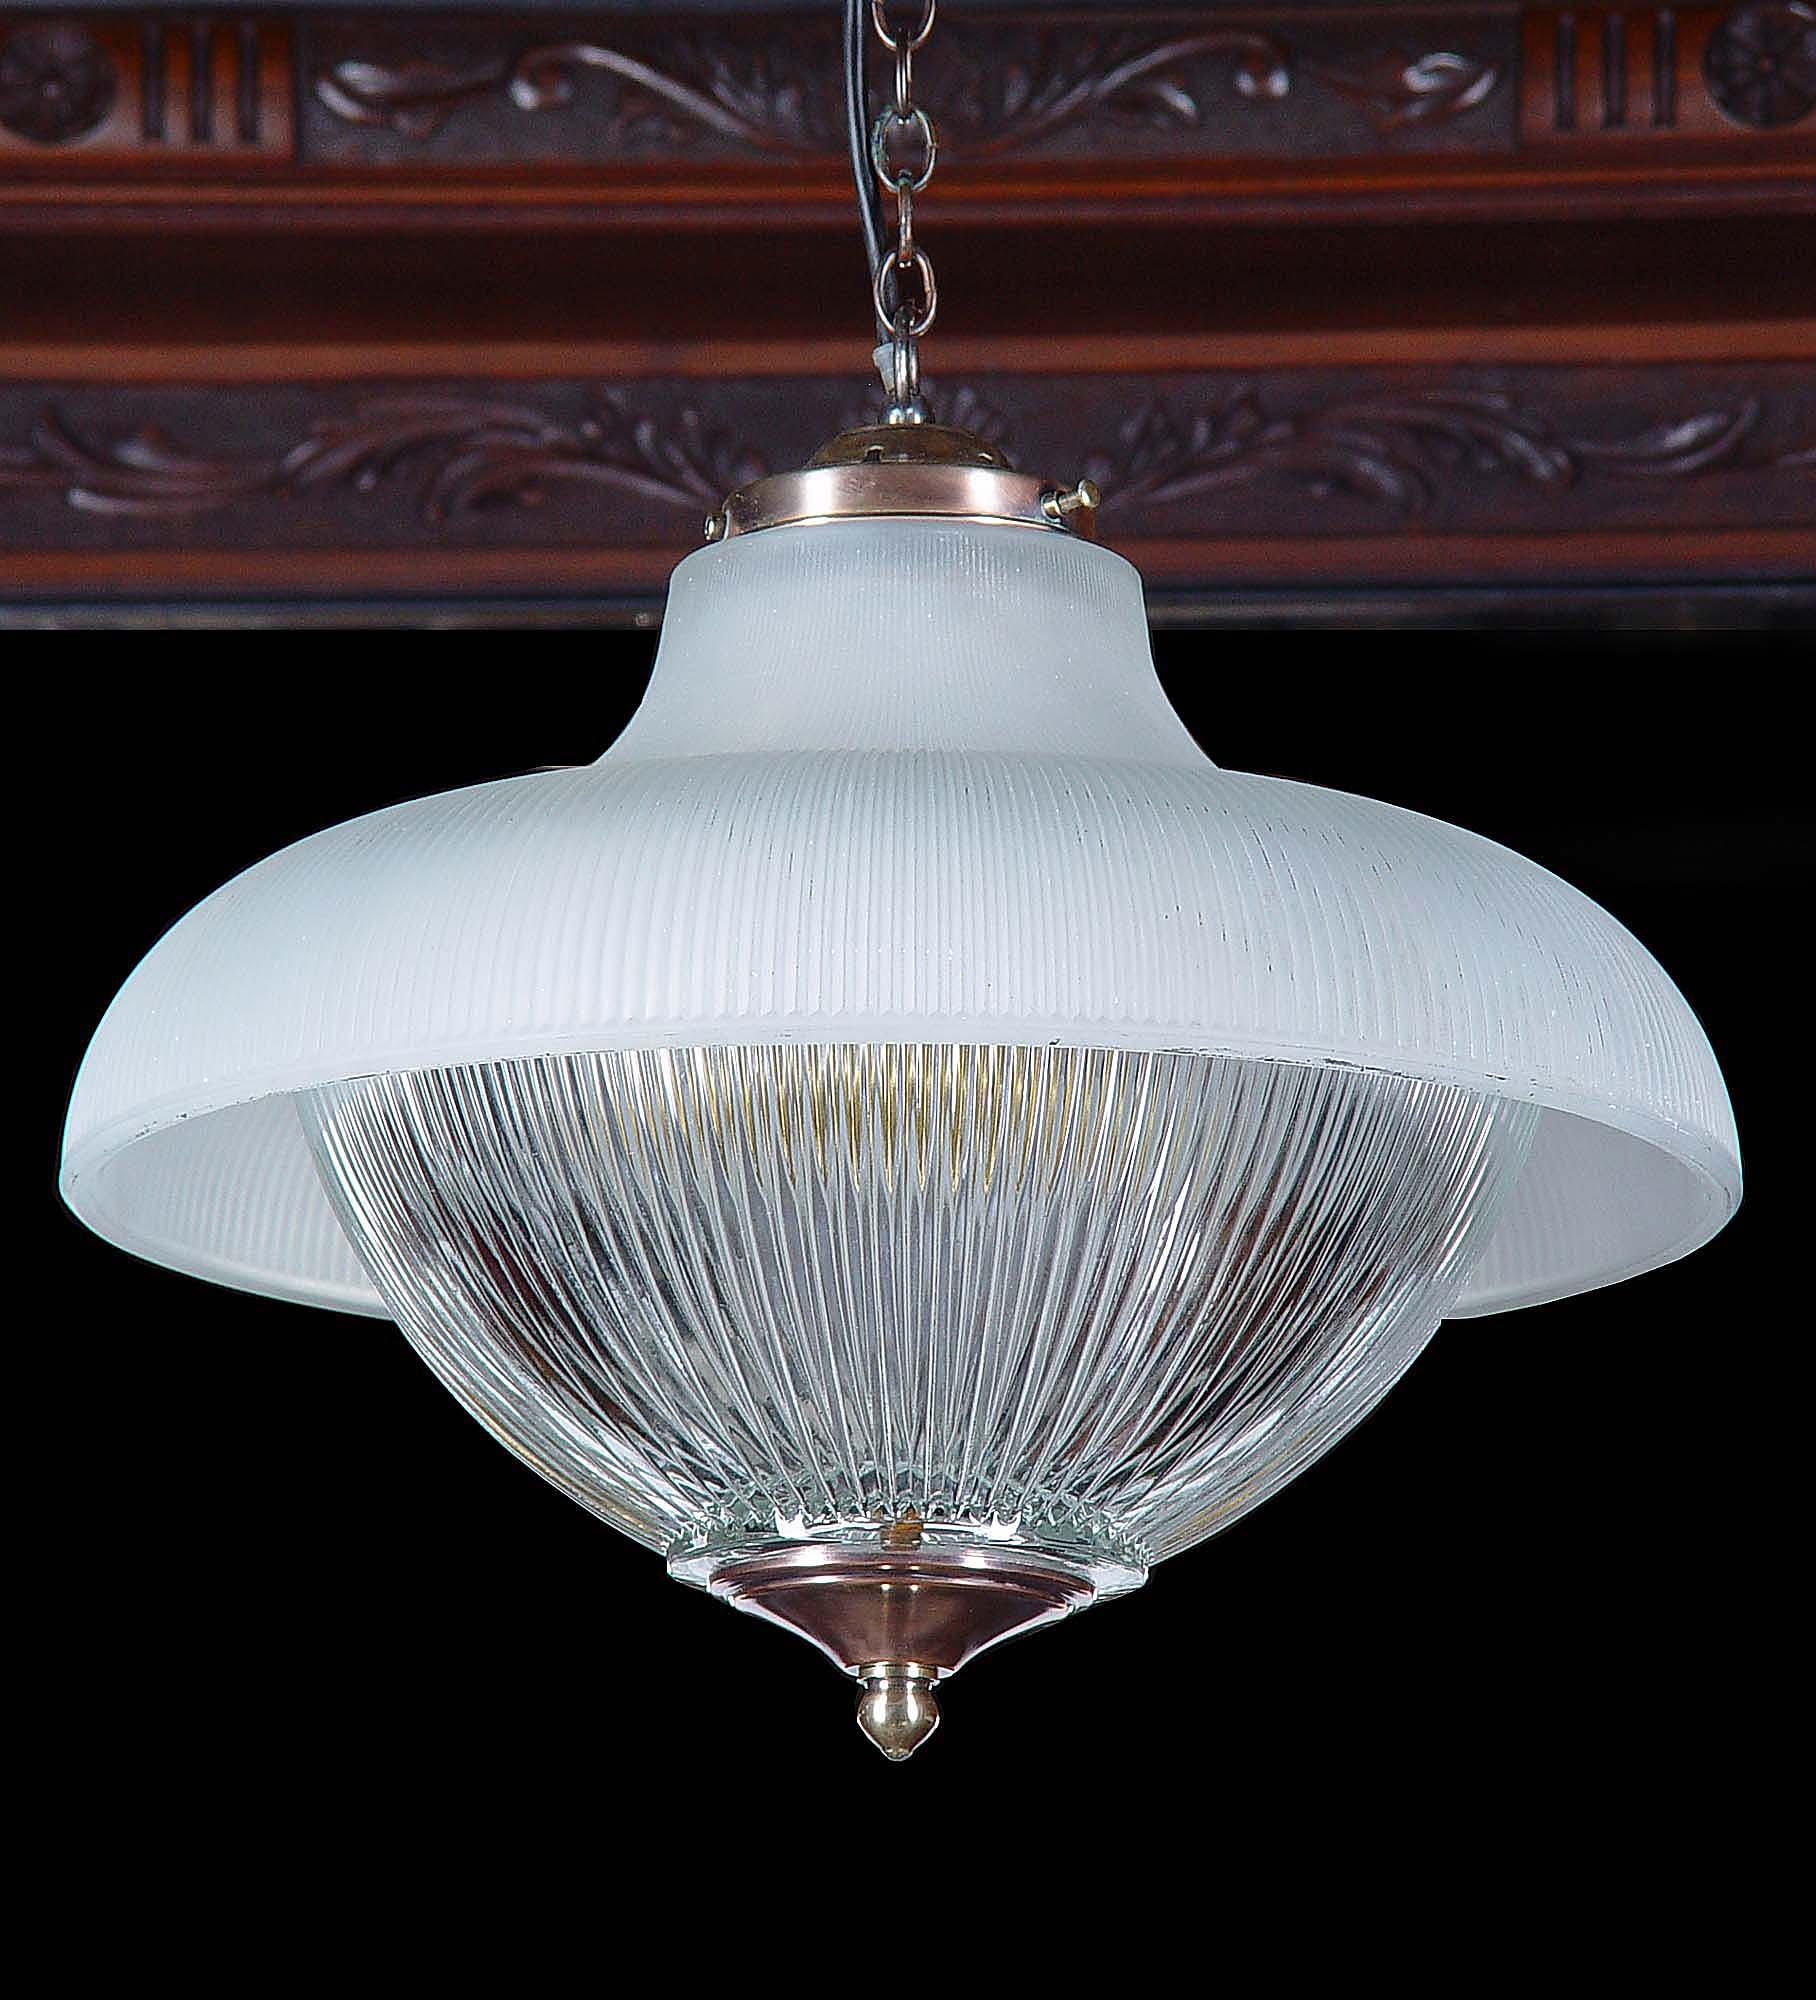 Art Deco Ceiling Light Fluted Shade Westland London